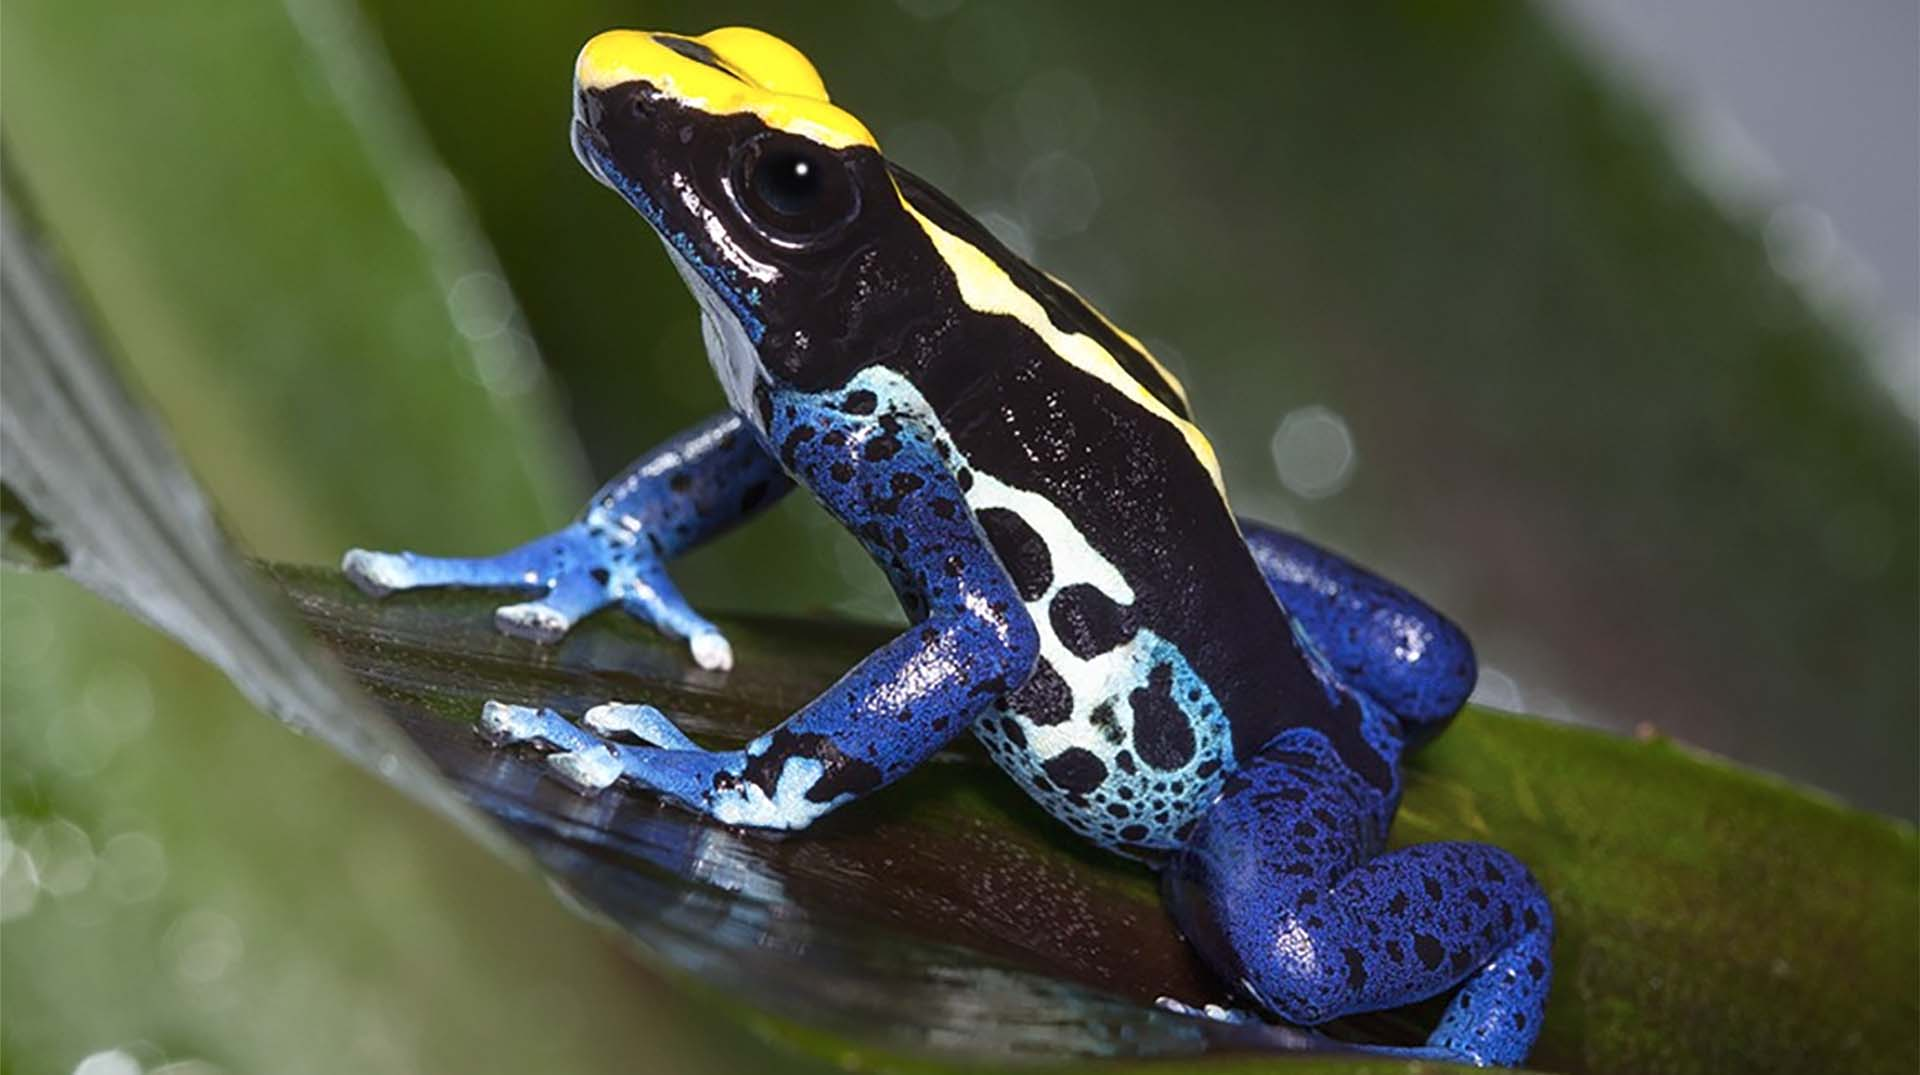 A yellow and blue poison frog with spots on a leaf. The frog's' bright colors warn predators of their toxicity.